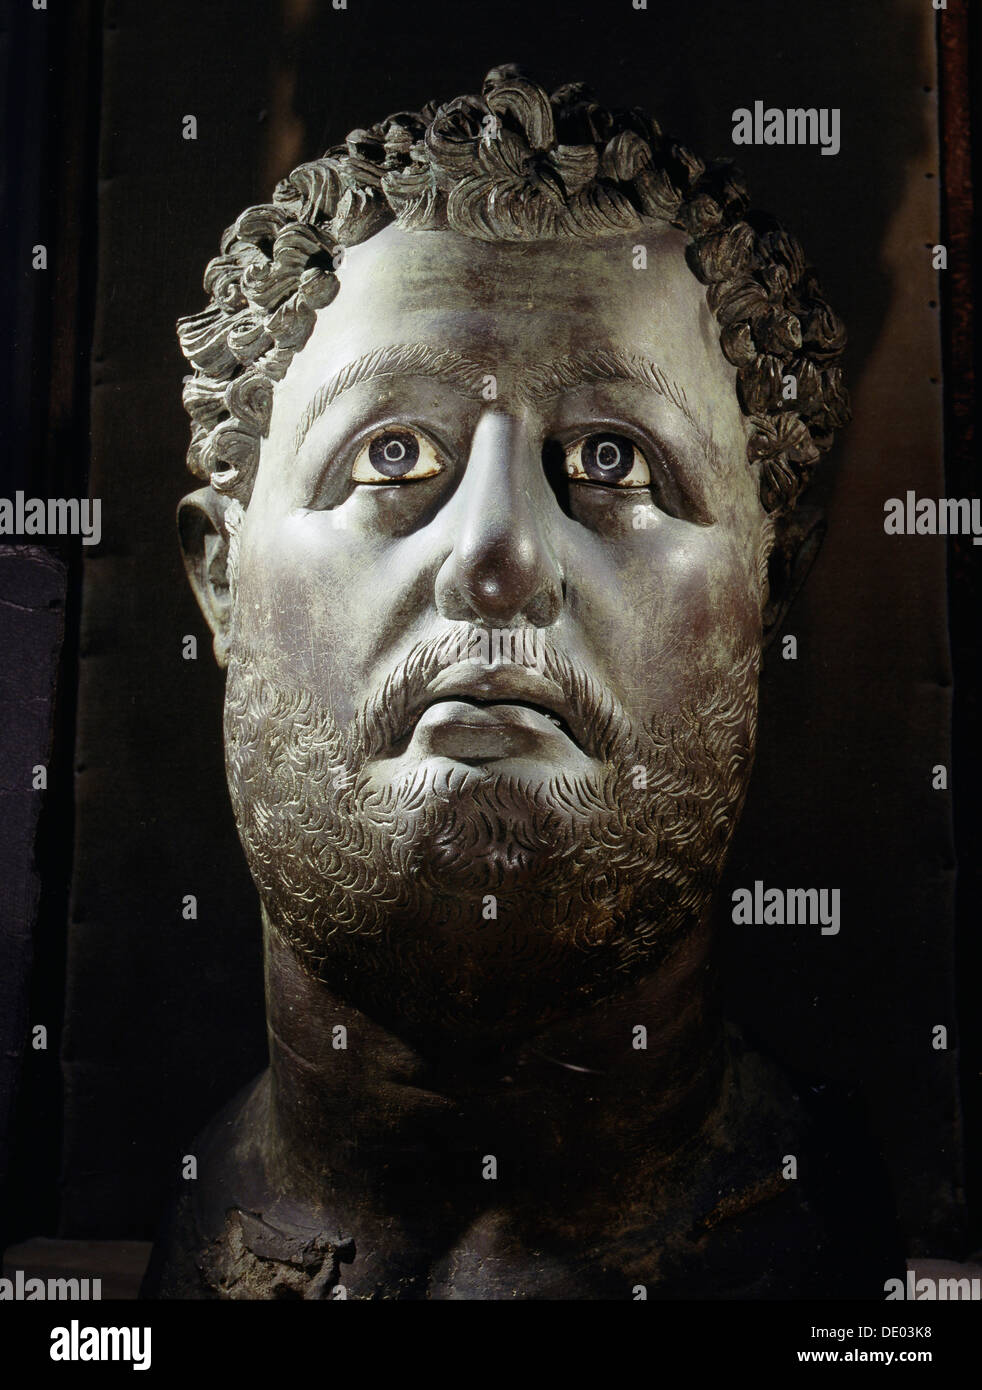 Colossal bronze head of the Roman Emperor Hadrian, from Egypt, c130-131. Artist: Werner Forman - Stock Image